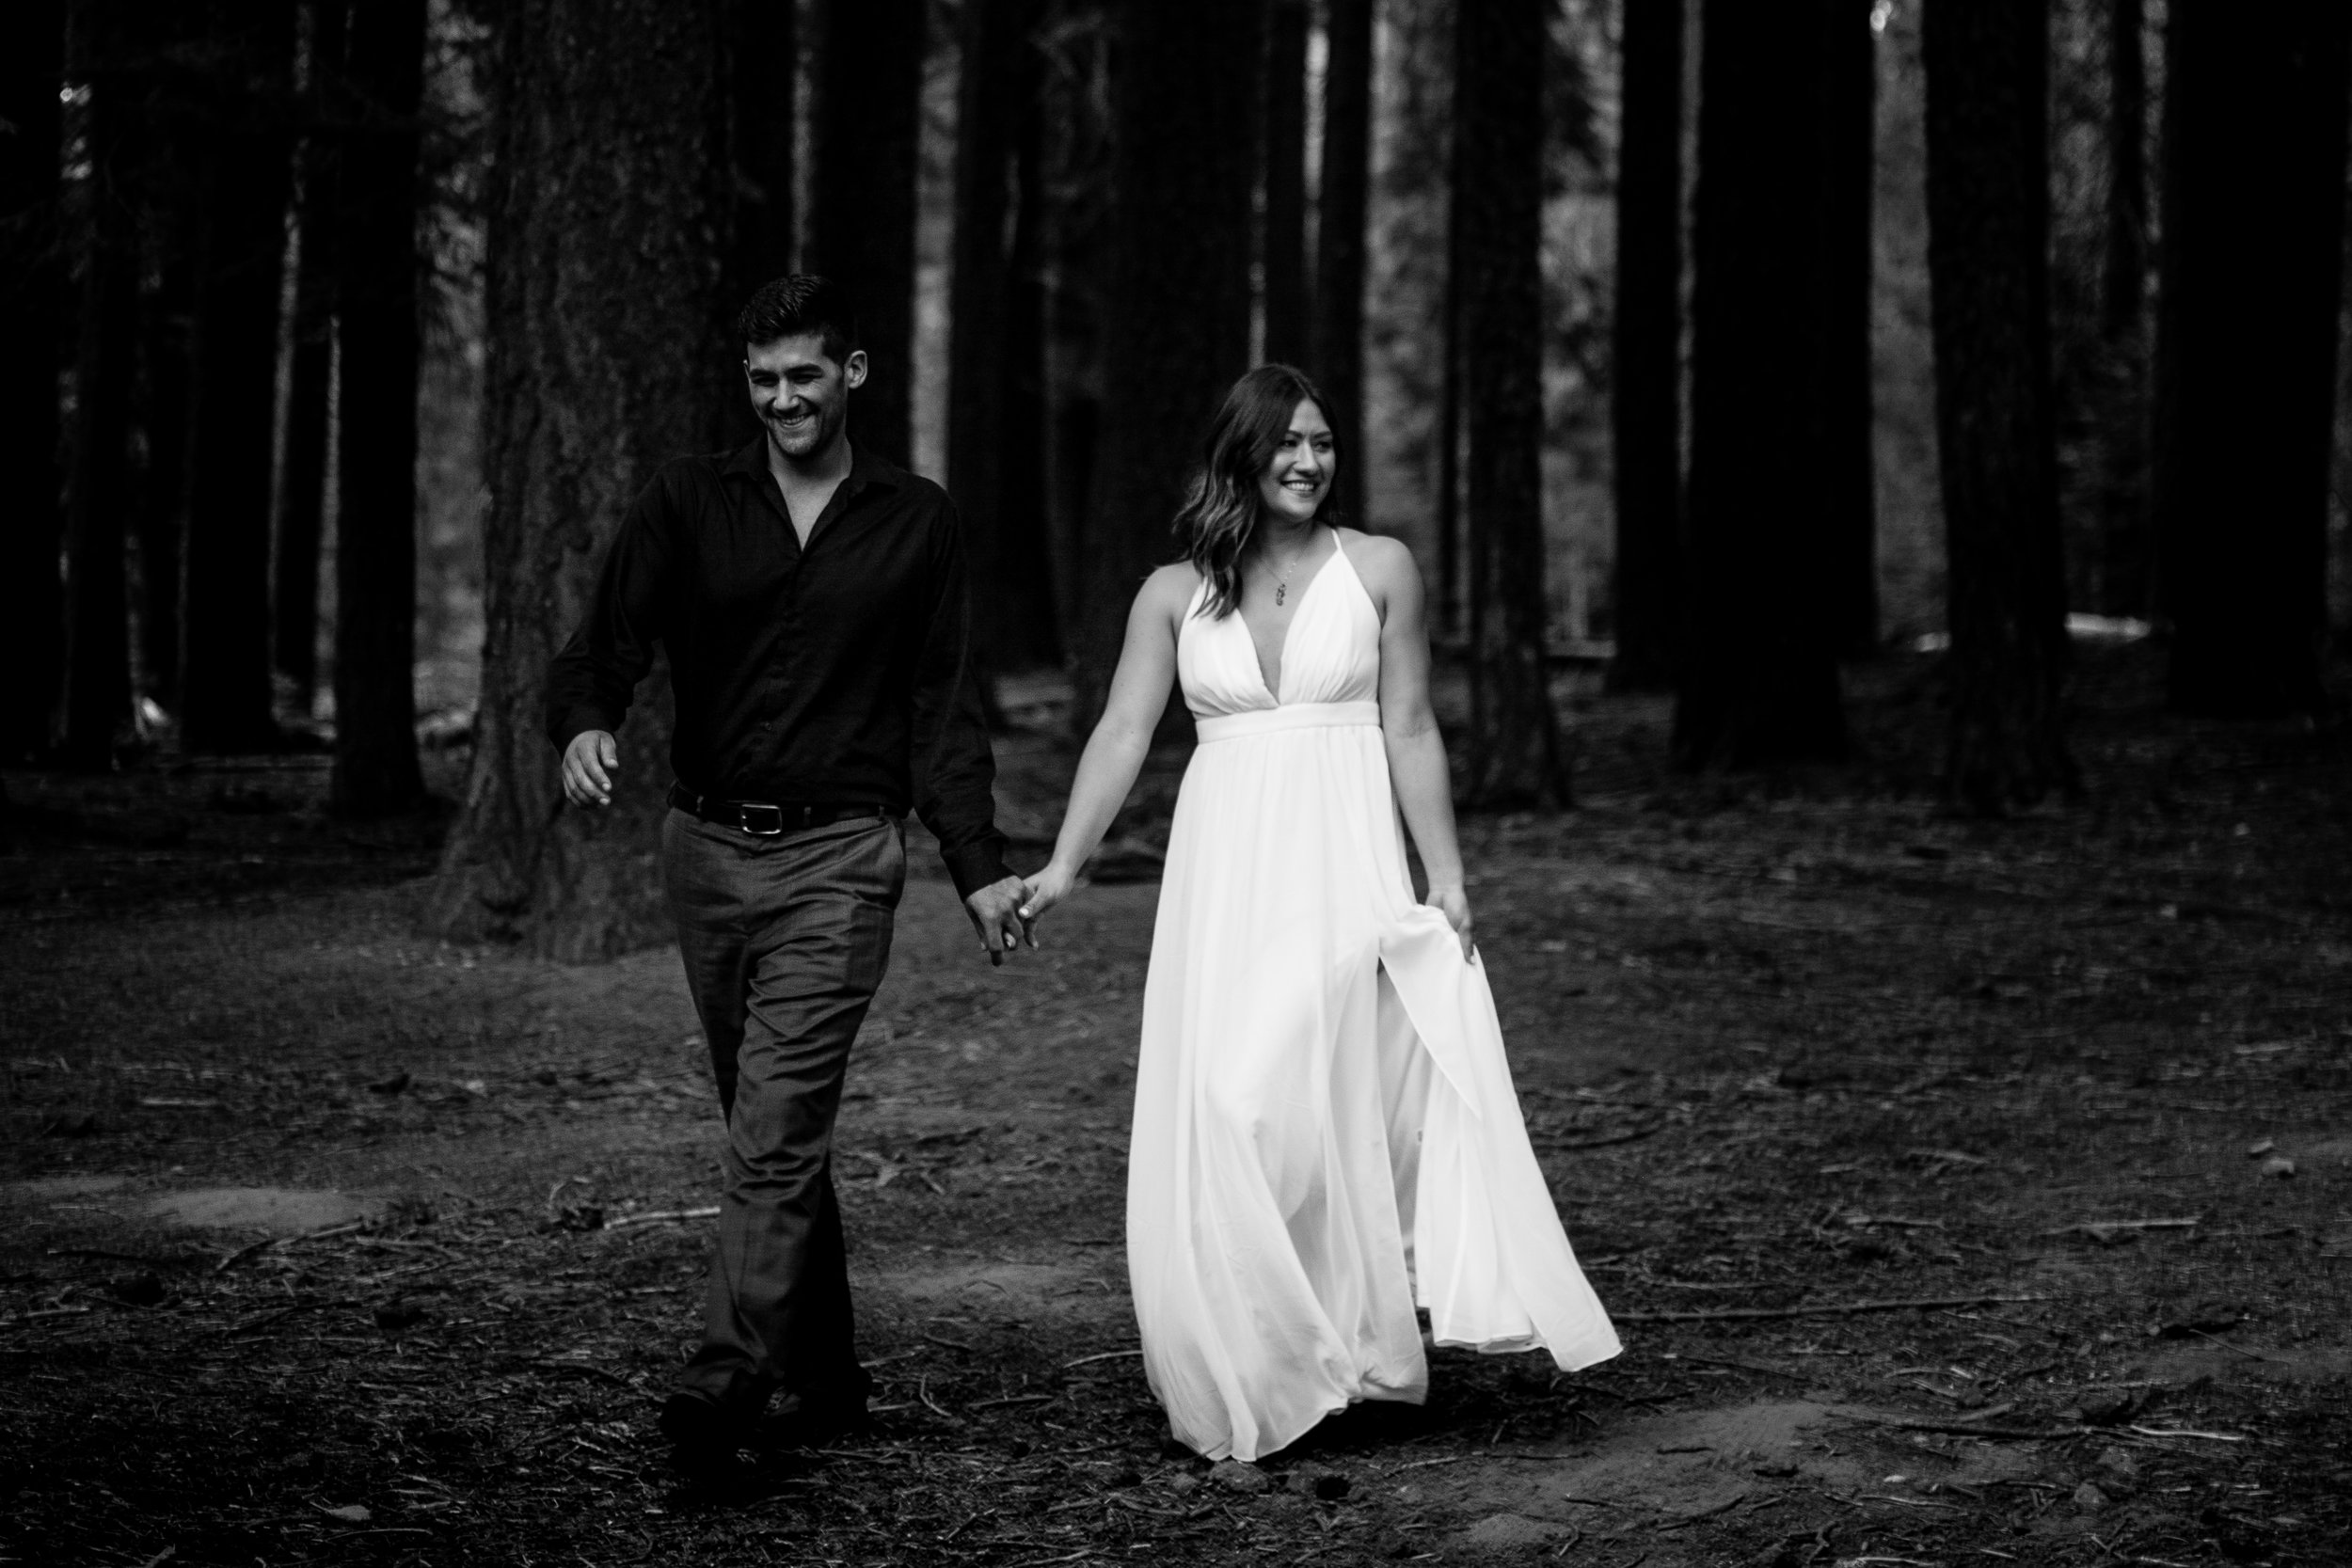 nicole-daacke-photography-yosemite-national-park-fall-elopement-adventurous-free-spirit-boho-bohemian-elopement-olmsted-point-yosemite-california-elope-adventure-elopement-photographer-3.jpg